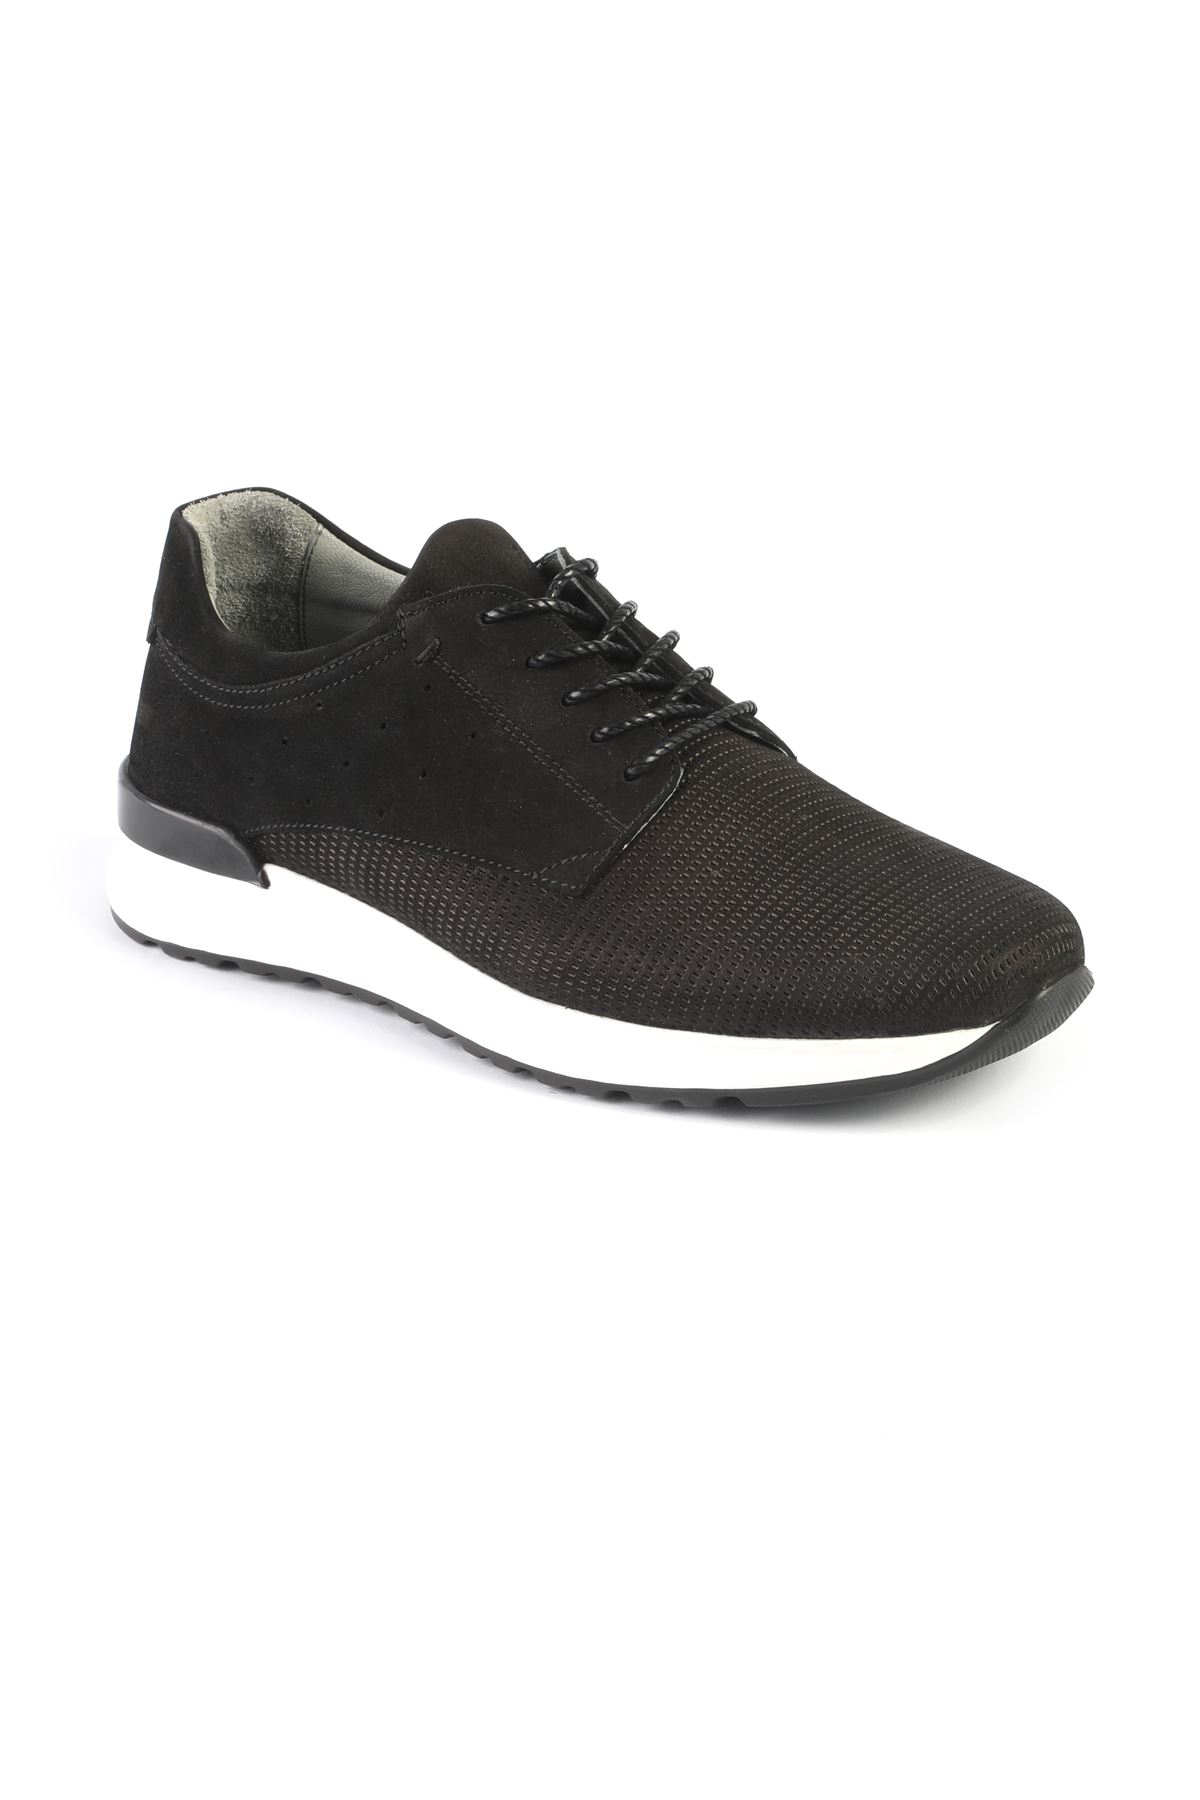 Libero 3046 Black Sports Shoes